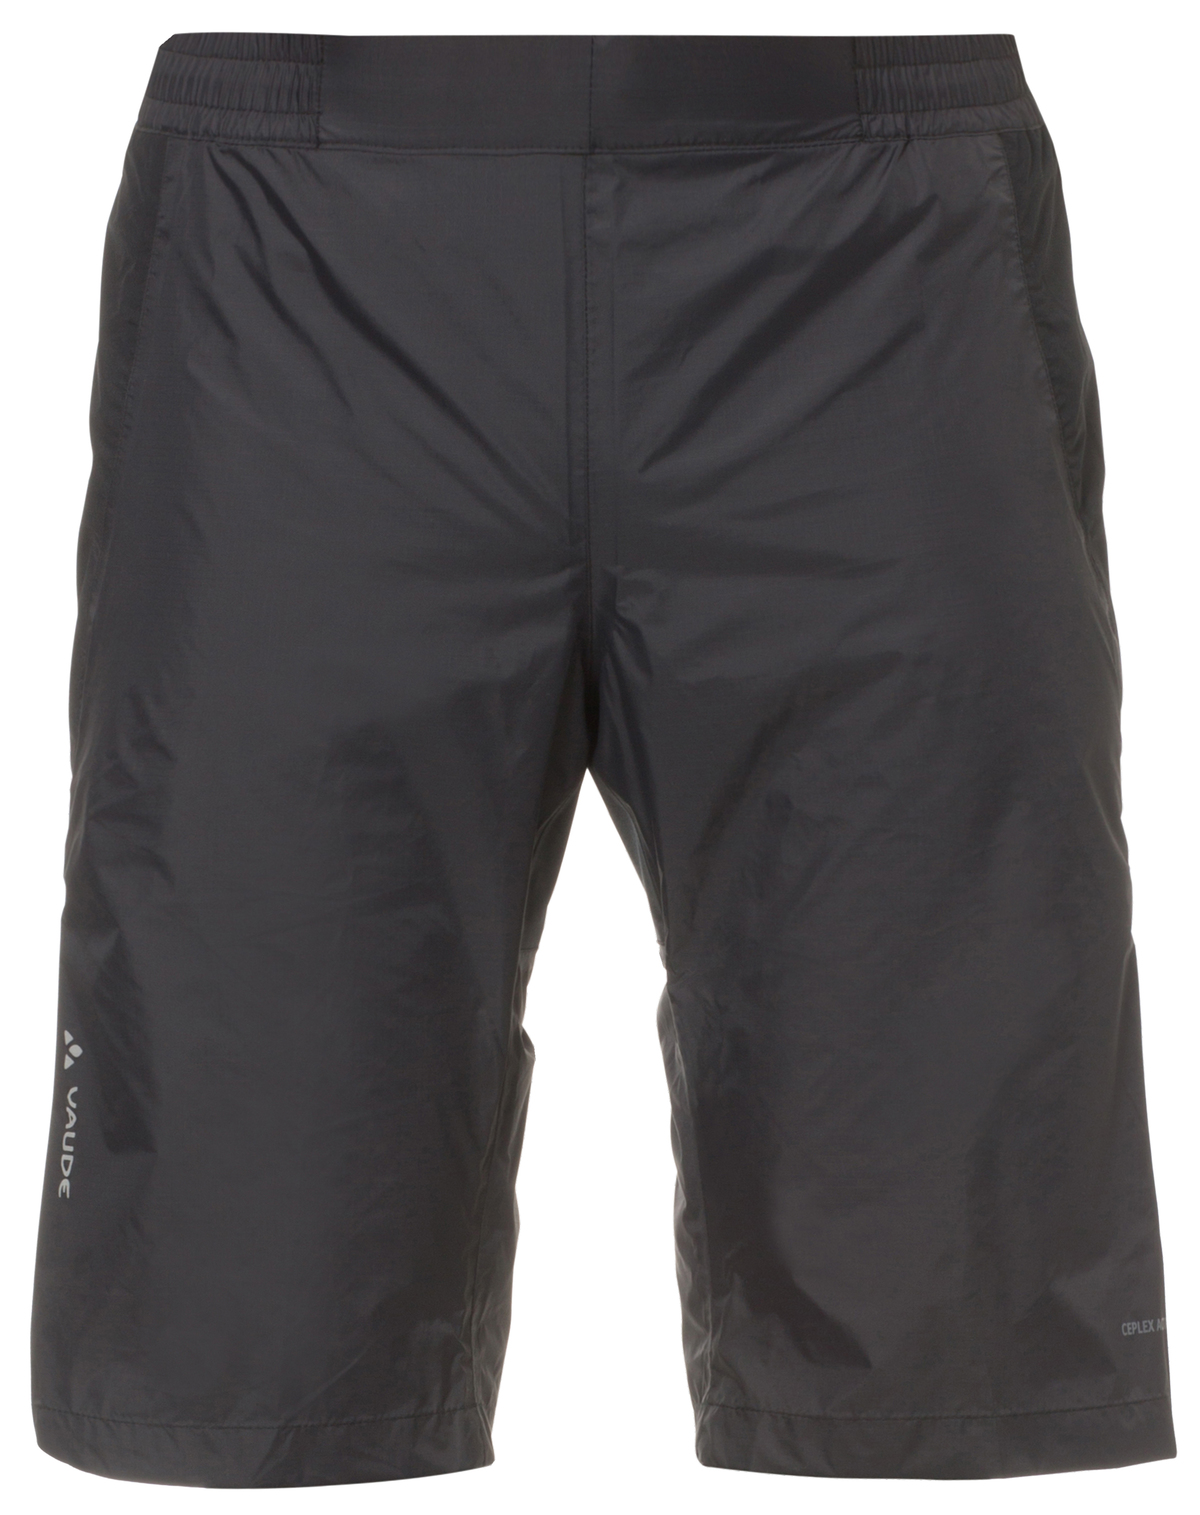 VAUDE Men´s Spray Shorts III black Größe M - schneider-sports